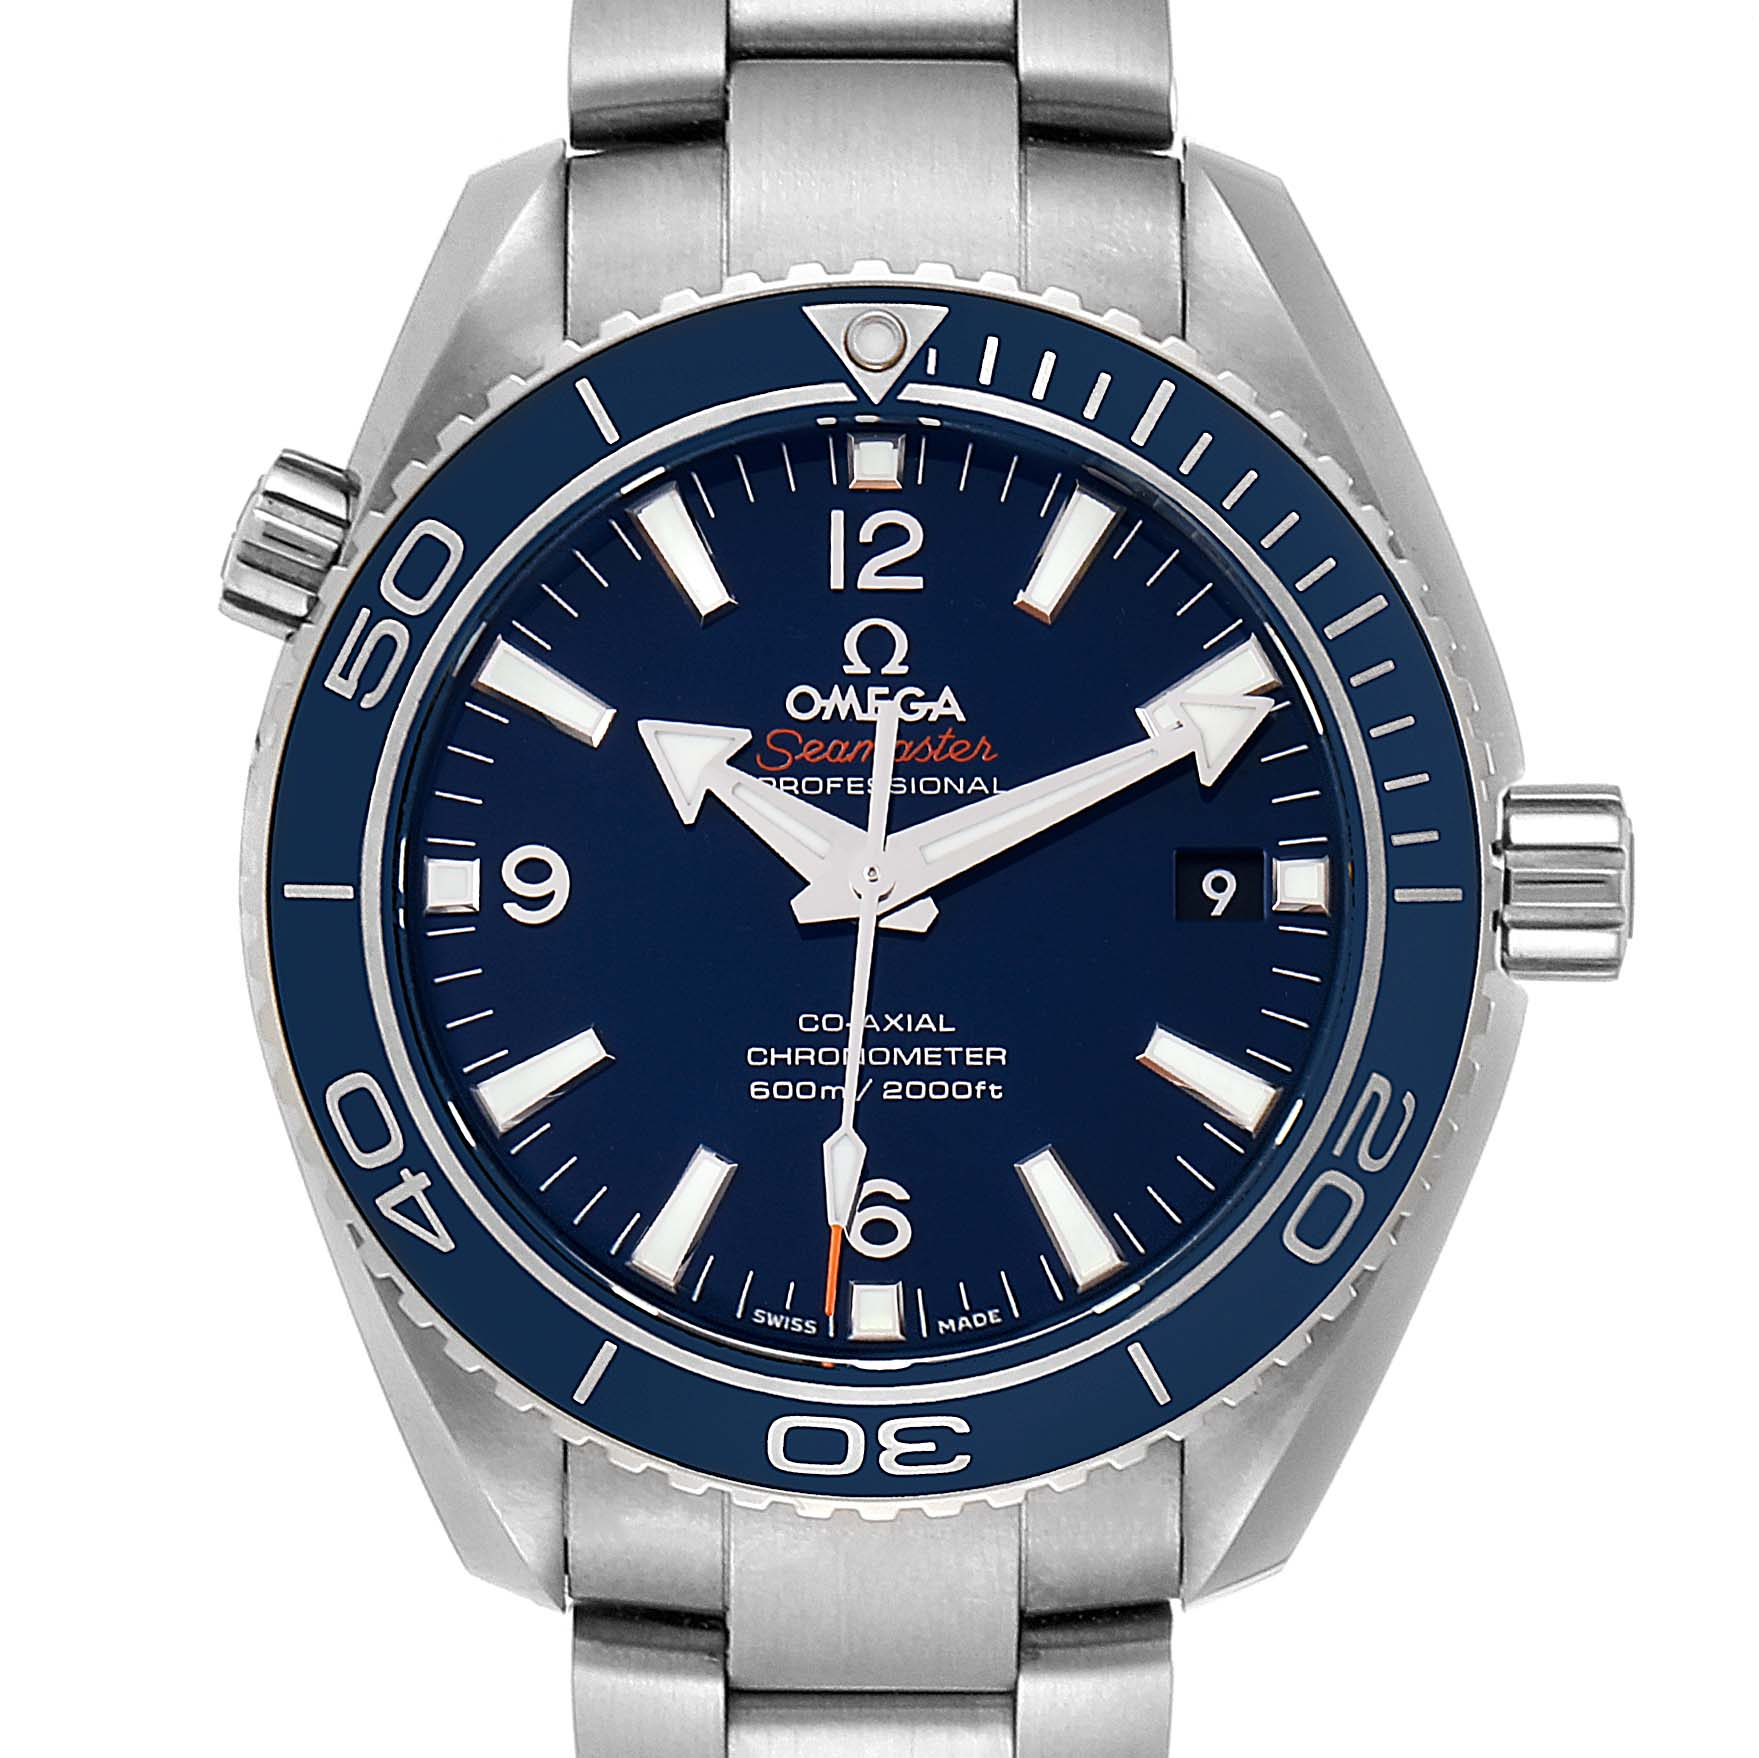 Omega Seamaster Planet Ocean 42mm Watch 232.90.42.21.03.001 Unworn